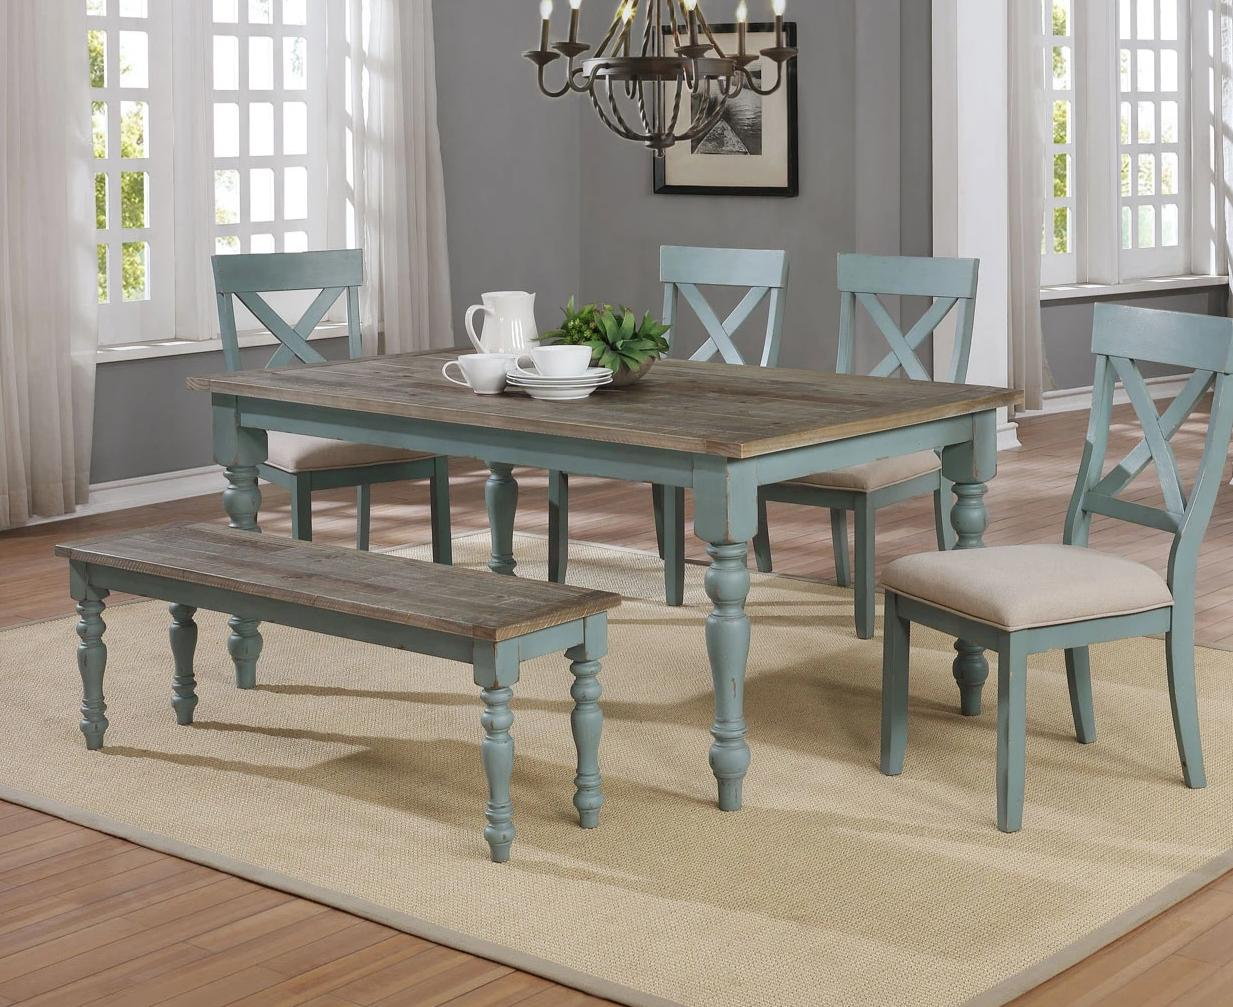 1854 Farmhouse Dining Weathered Finish Tops w/Robins Egg - Table, 4 Chairs and a Bench $795.99